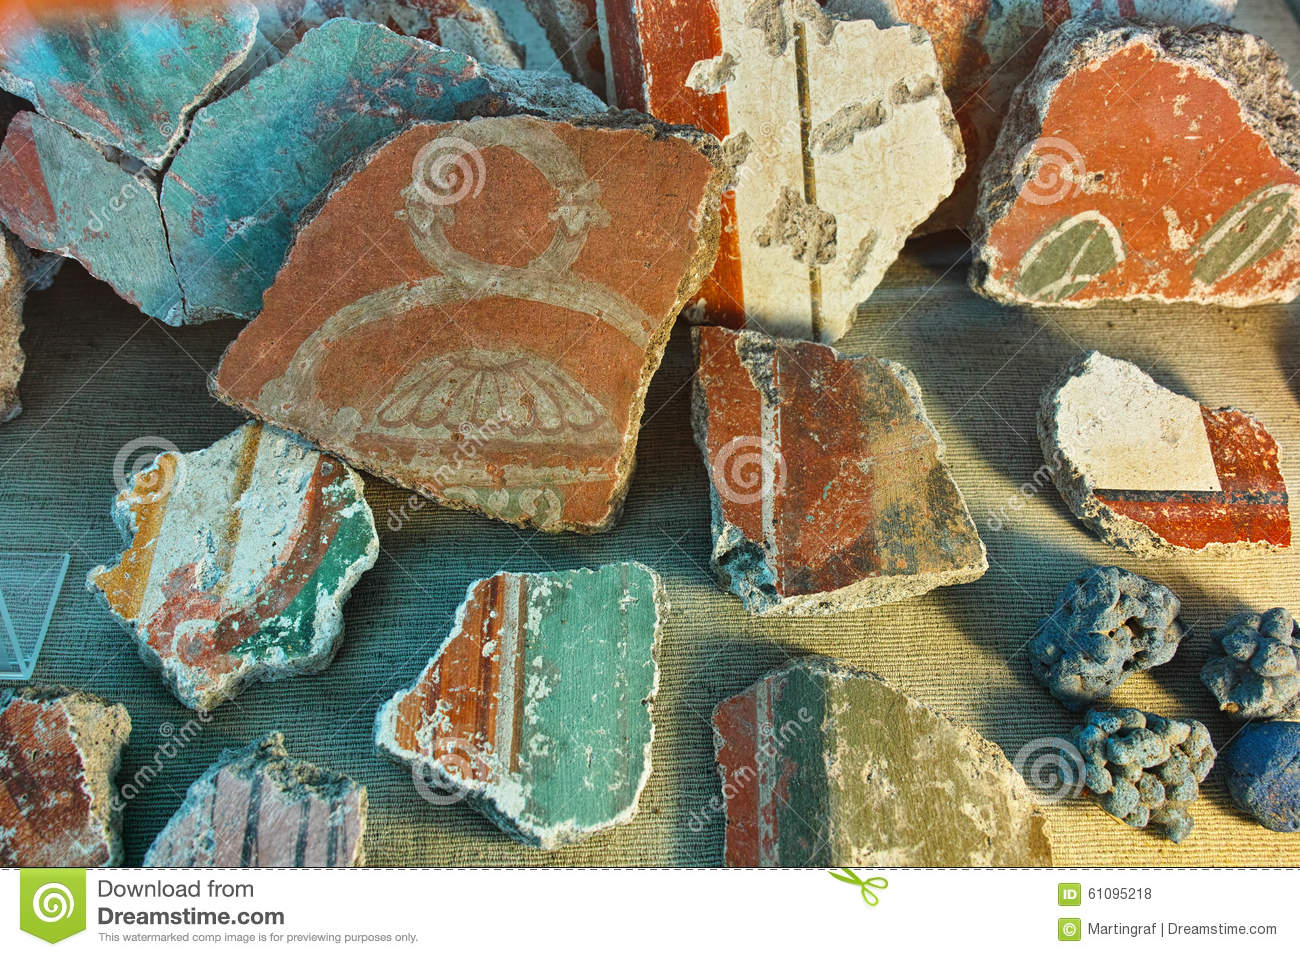 Pieces of ancient Roman mural painting